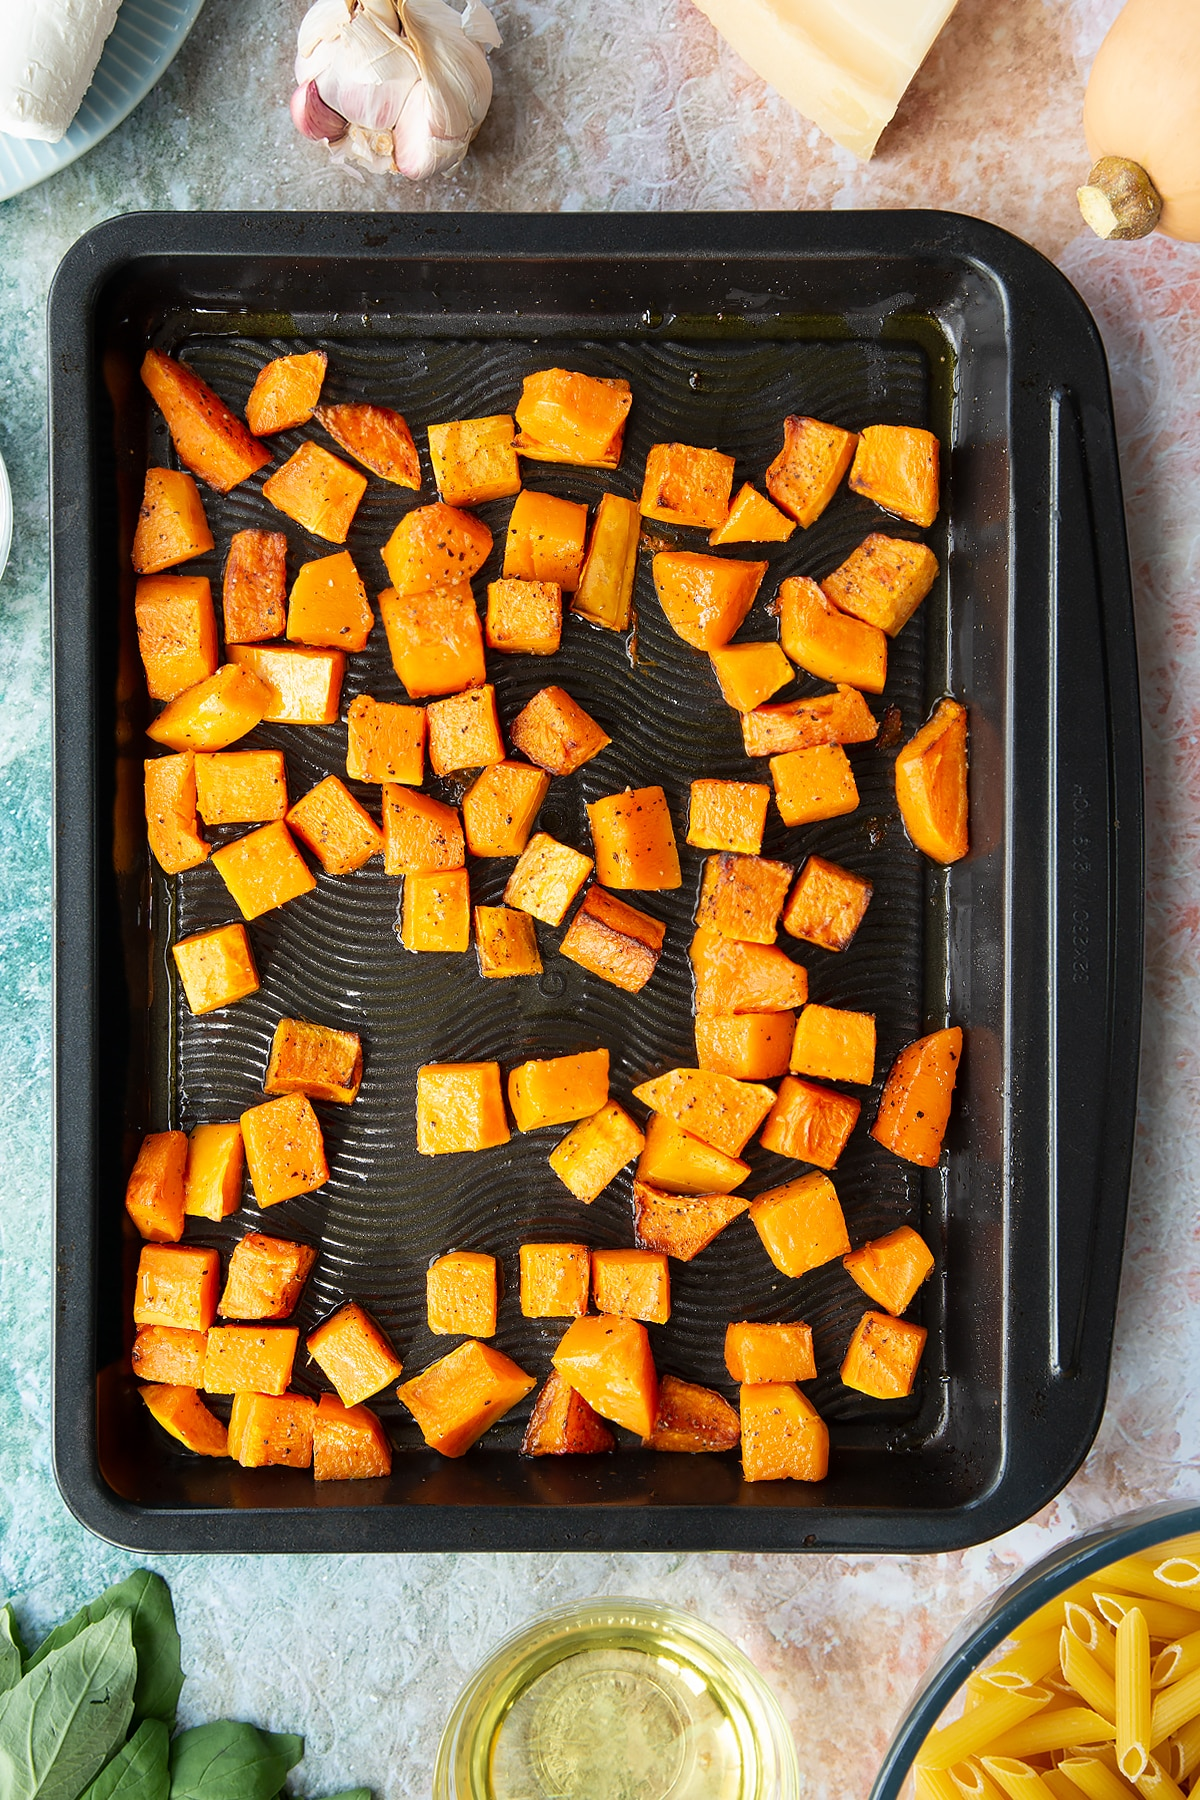 Roasted chunks of butternut squash on a black tray. Ingredients to make penne with butternut squash and goat cheese surround the tray.